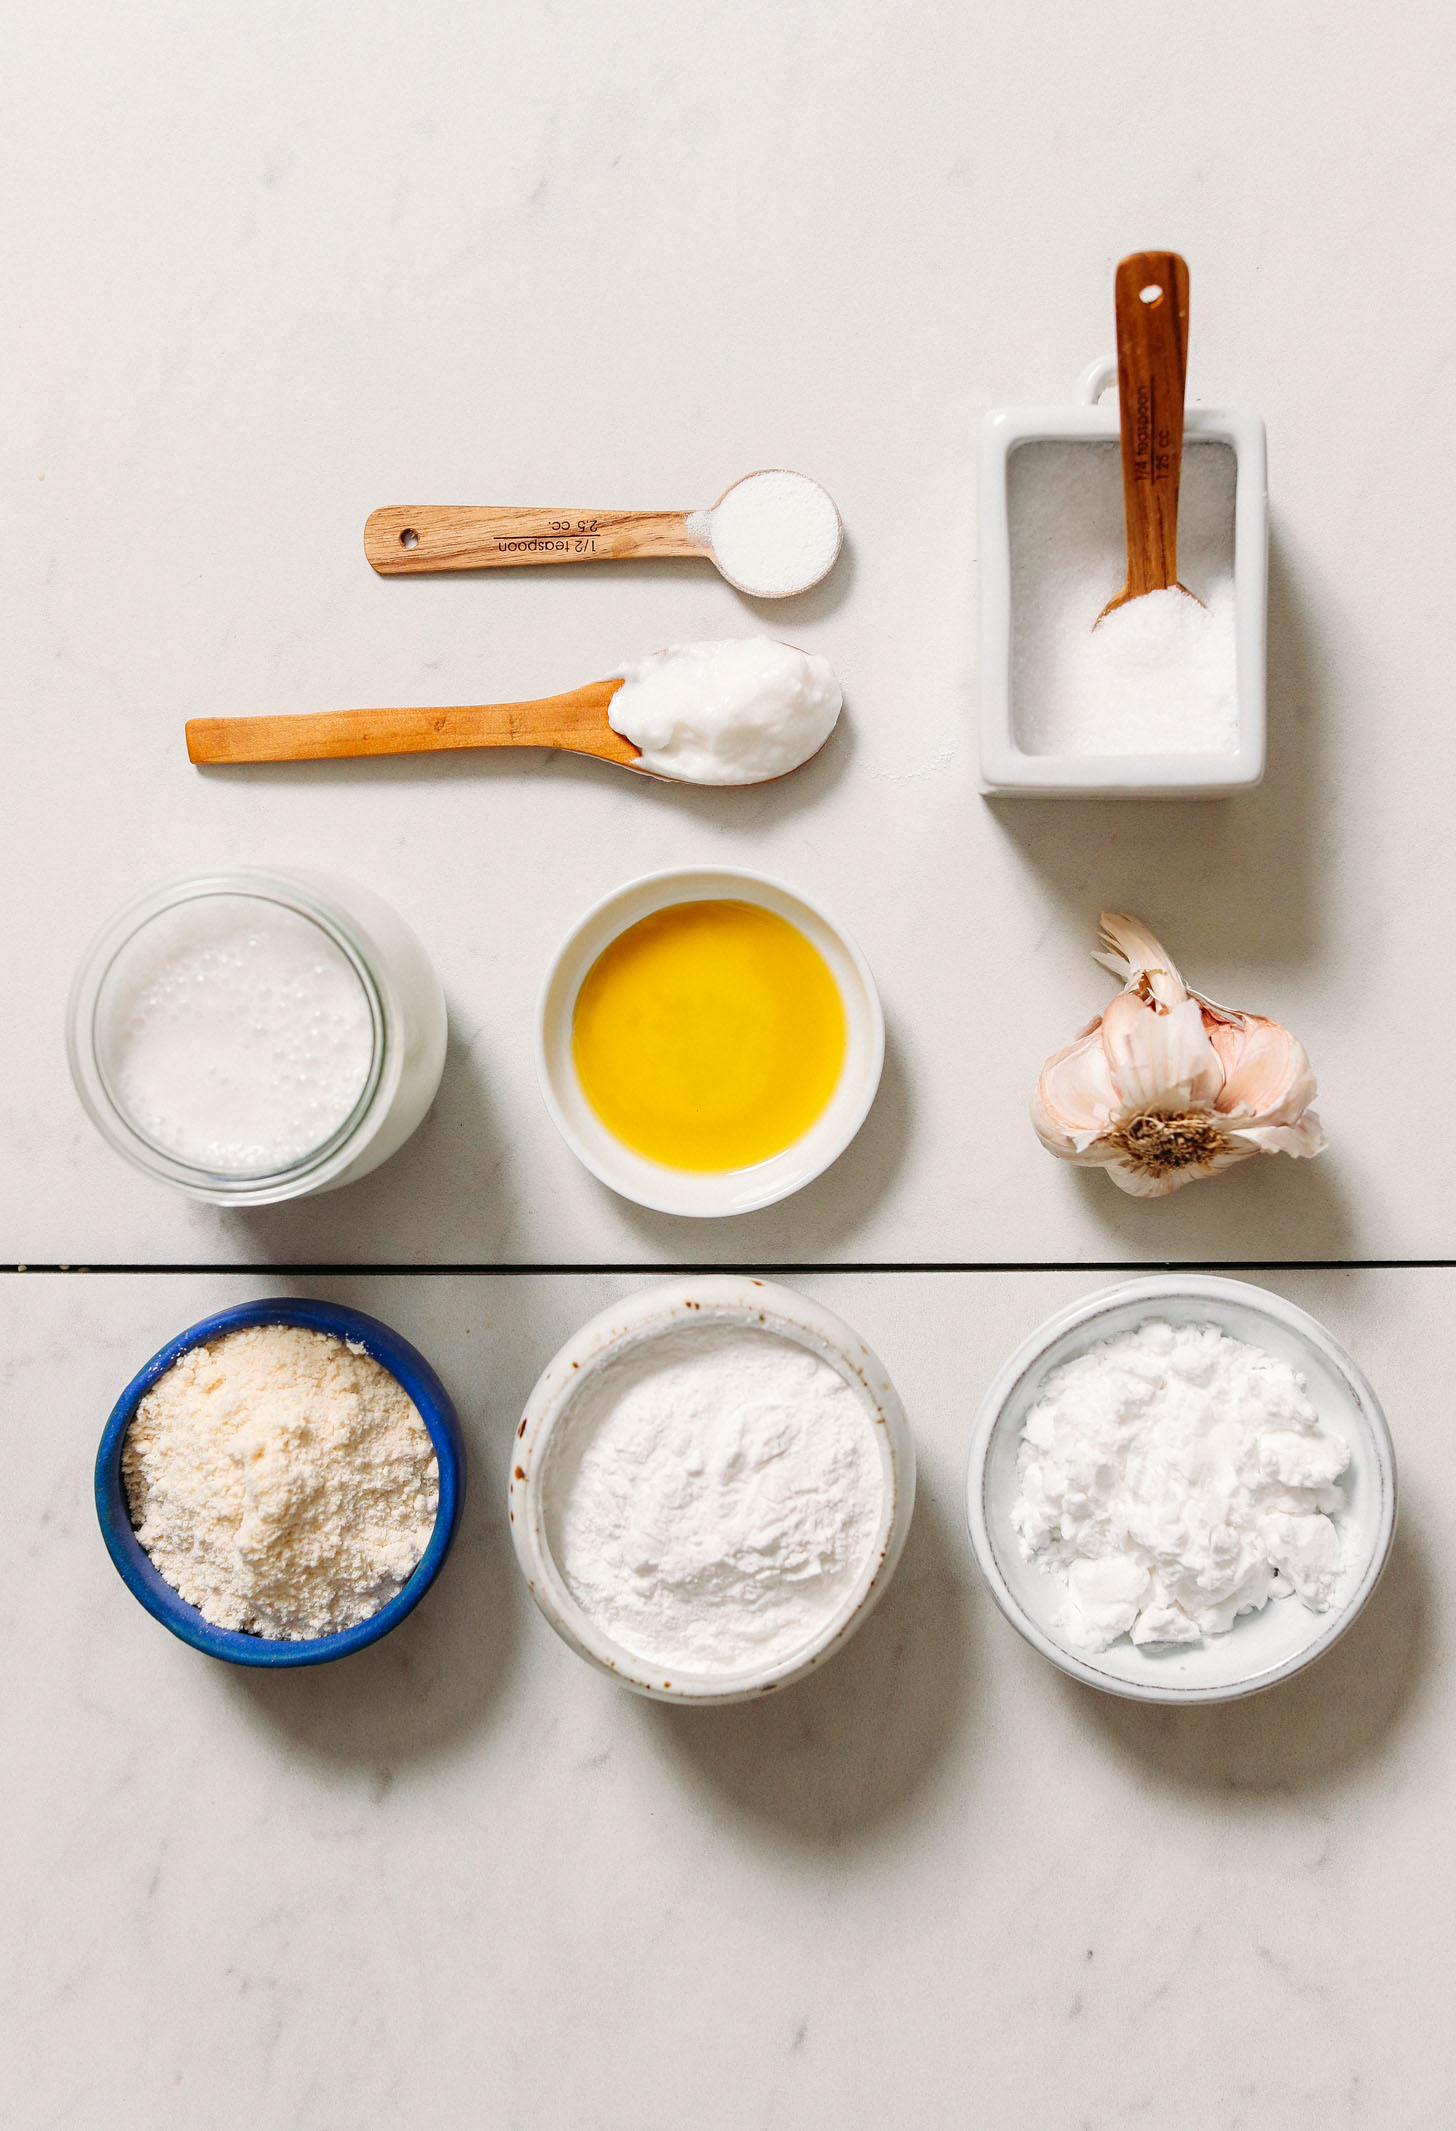 Gluten free flours, coconut milk, coconut yogurt, baking powder, salt, garlic, and olive oil